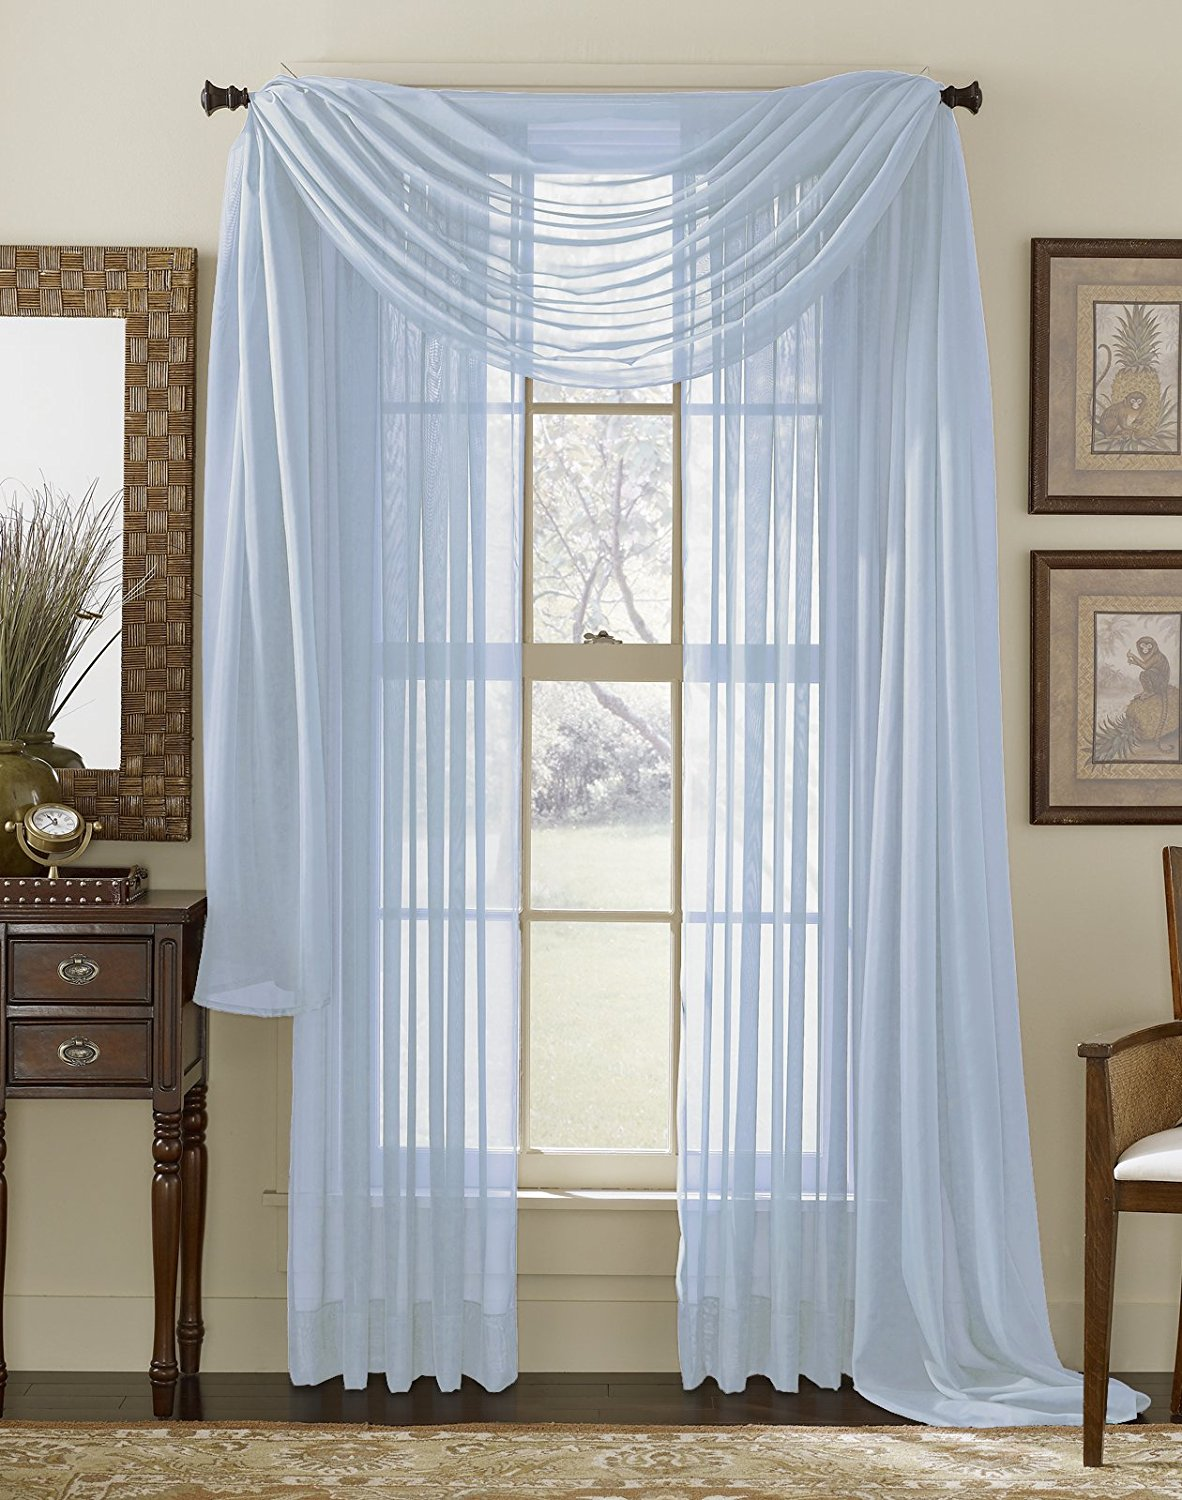 popular sheer and ideas design uv shocking blue chelsea window panels trends curtains nsyd panel navy eclipse light filtering of home grey white curtain shrug drapes